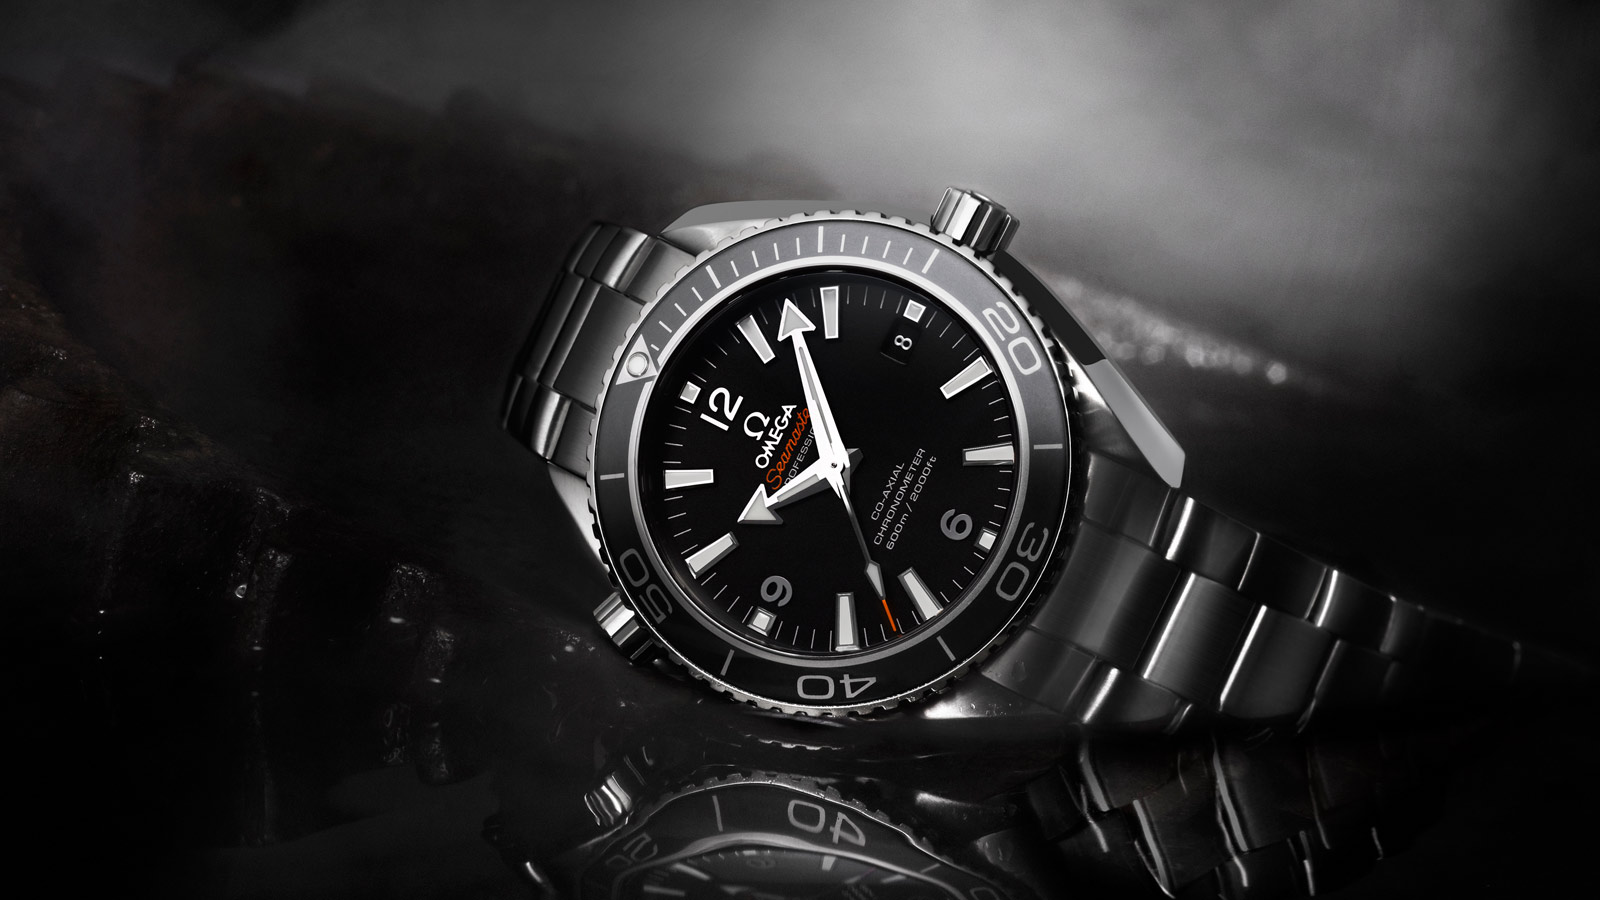 Seamaster Planet Ocean 600M Planet Ocean 600M Omega Co‑Axial 42 mm - 232.30.42.21.01.001 - Ver 3